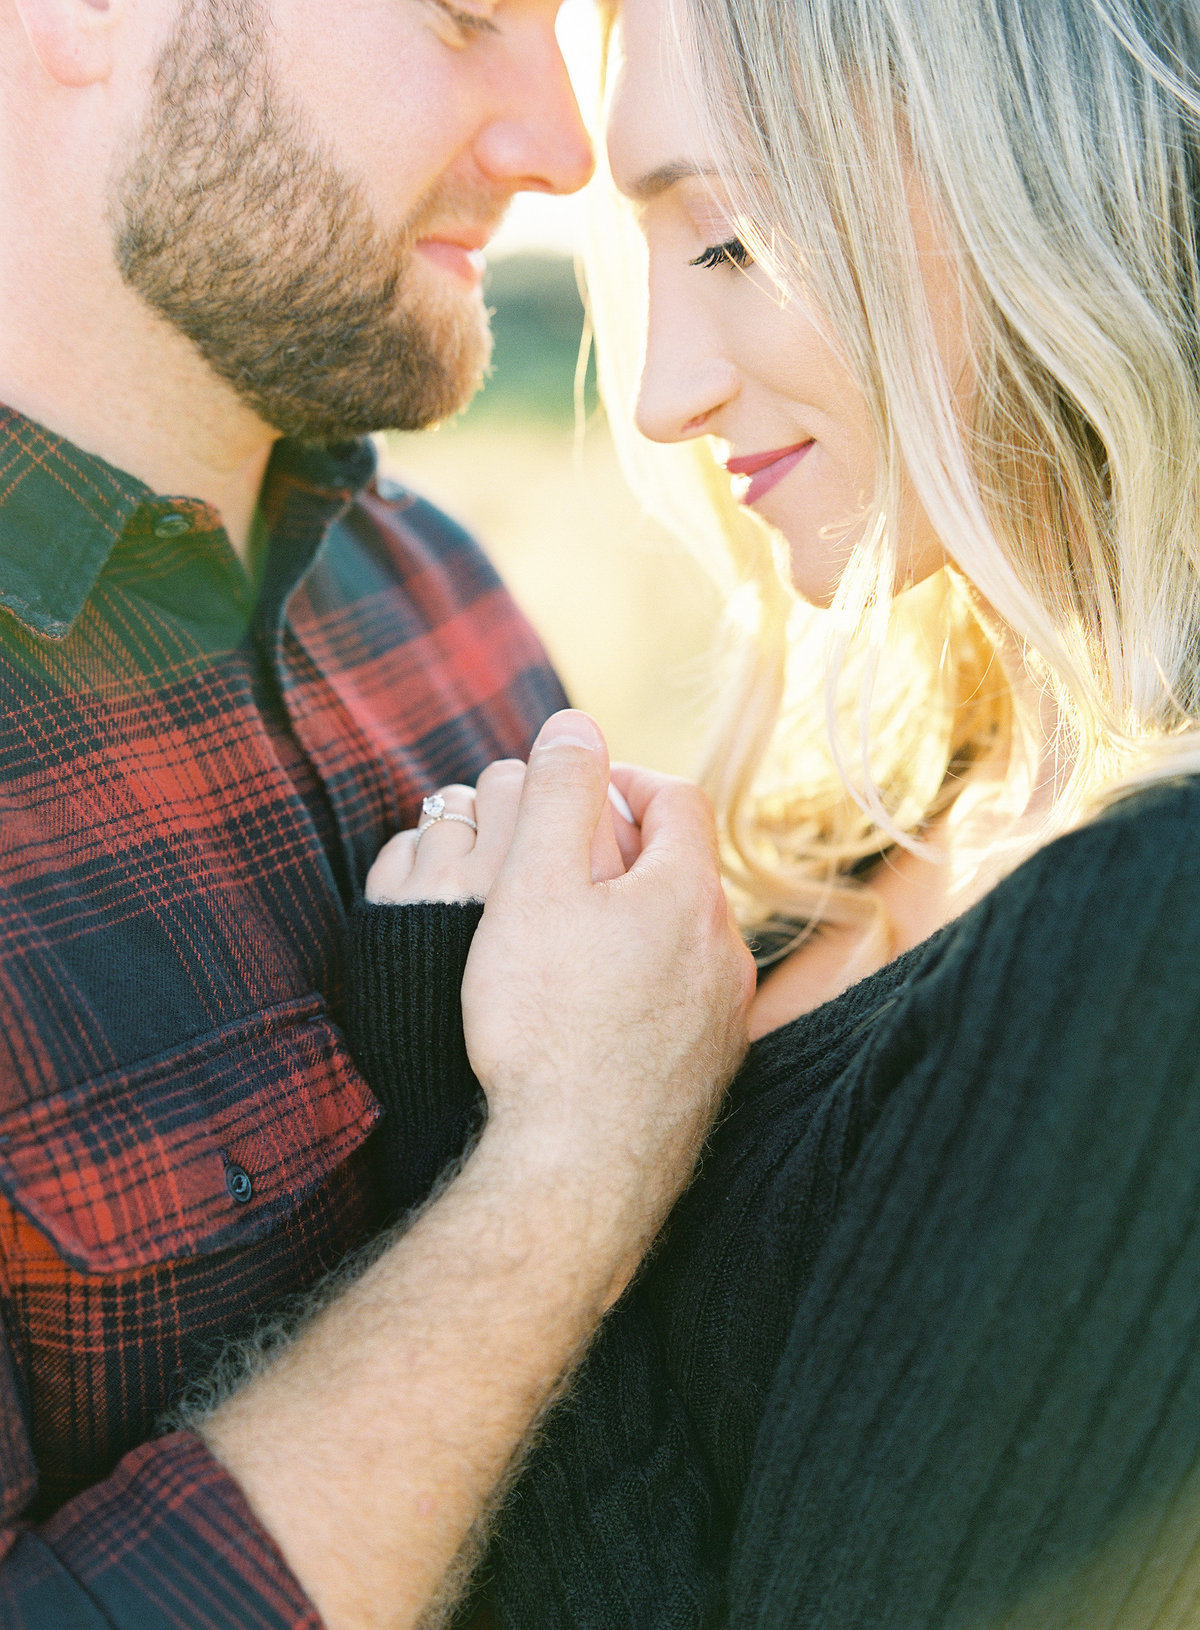 Bok_Tower_Garden_Film_Fine_Art_Engagement_Session-38